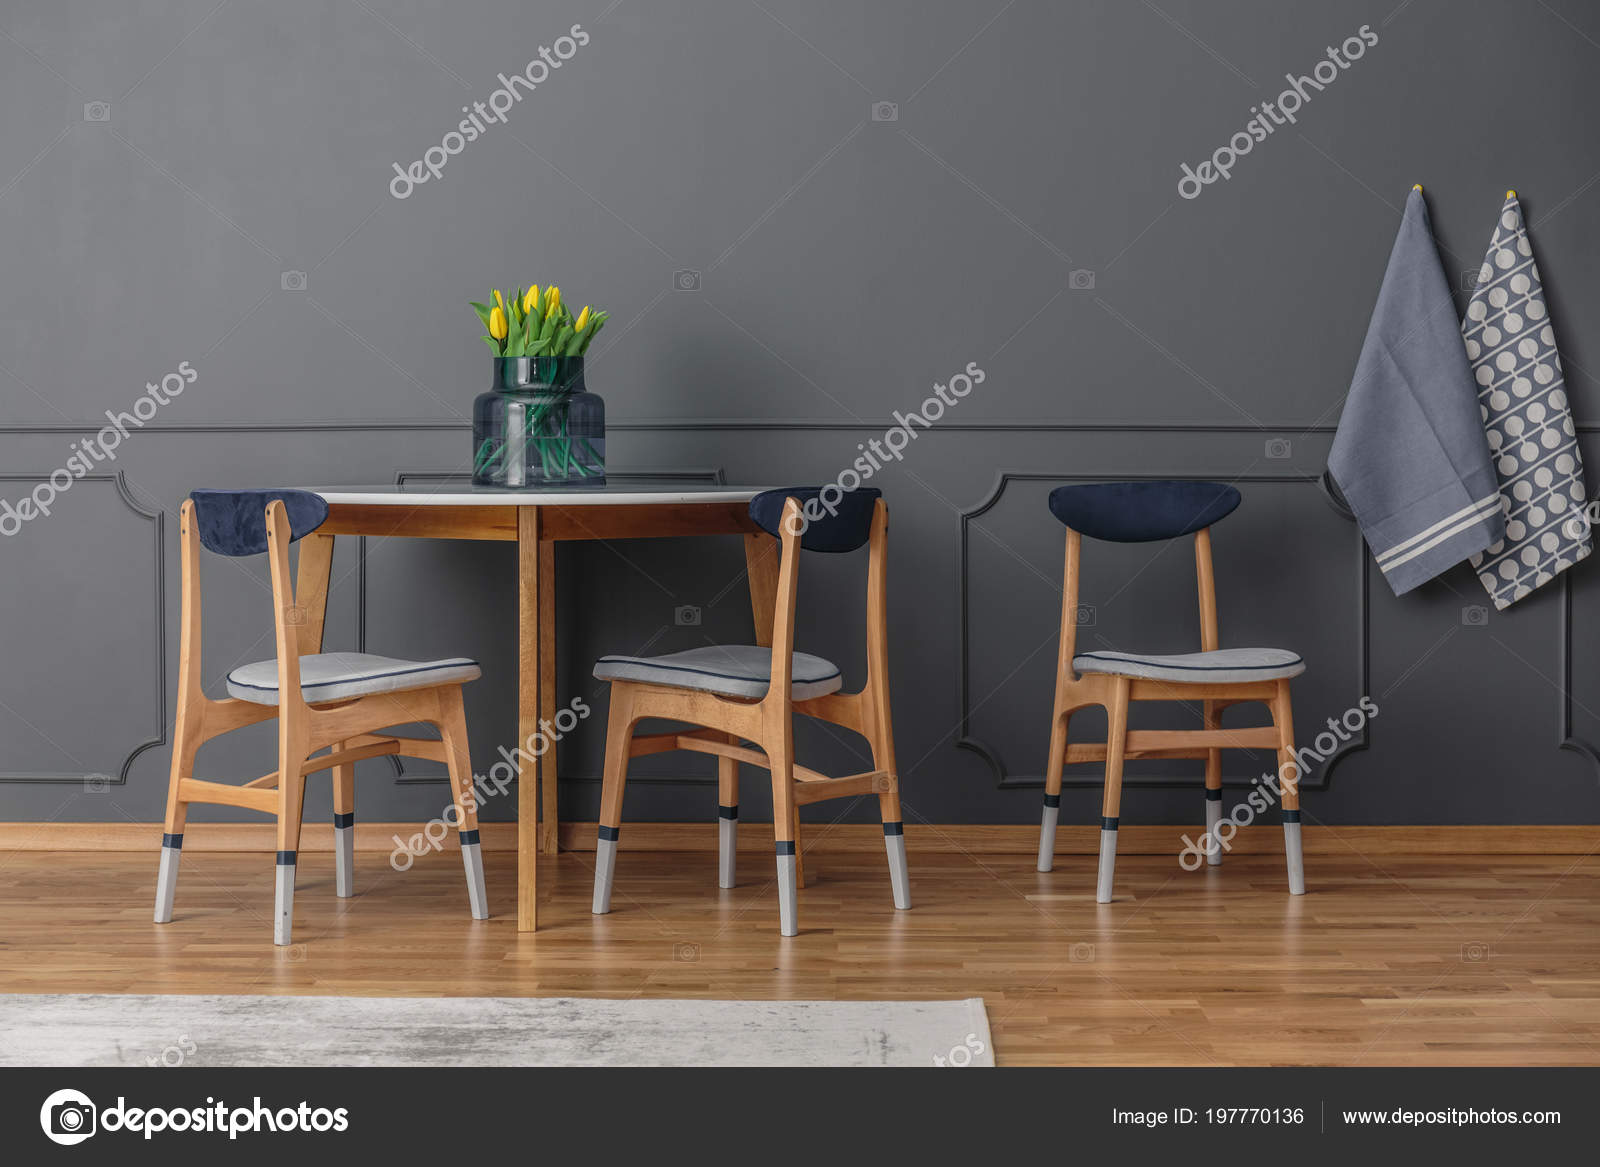 pictures of chair rails in dining rooms